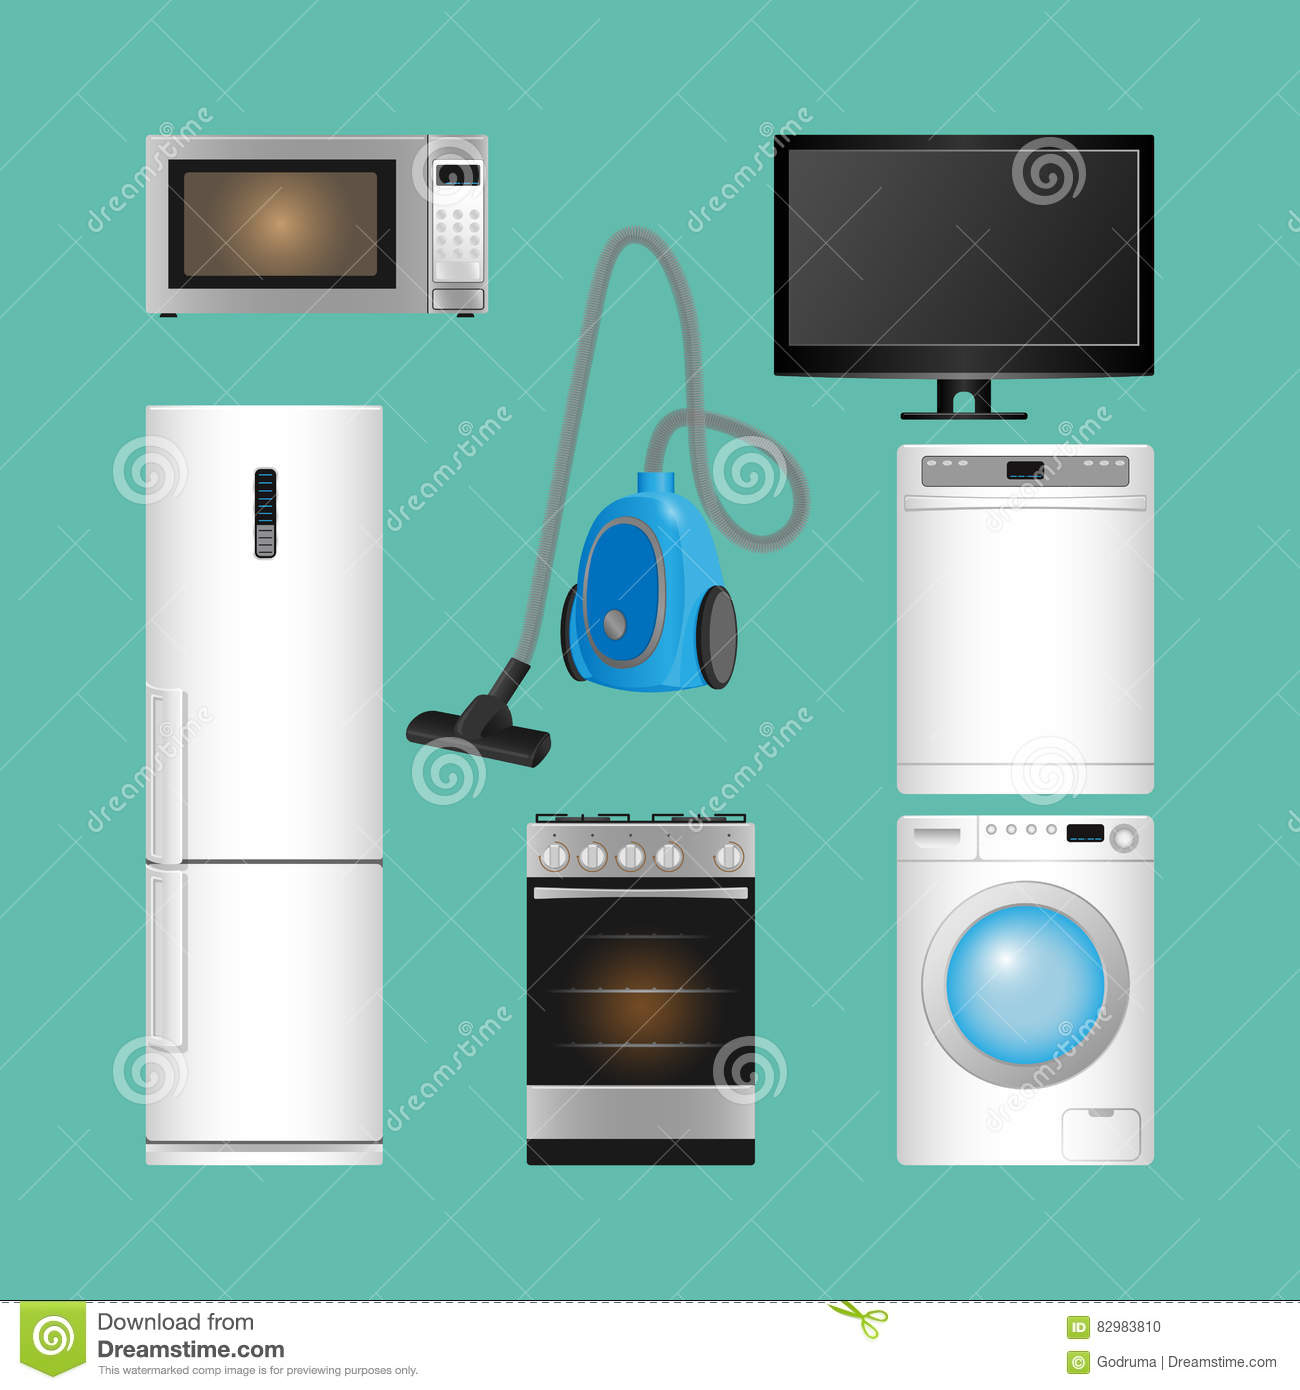 Set Of Household Appliances. Modern Kitchen Devices. Stock Vector ...